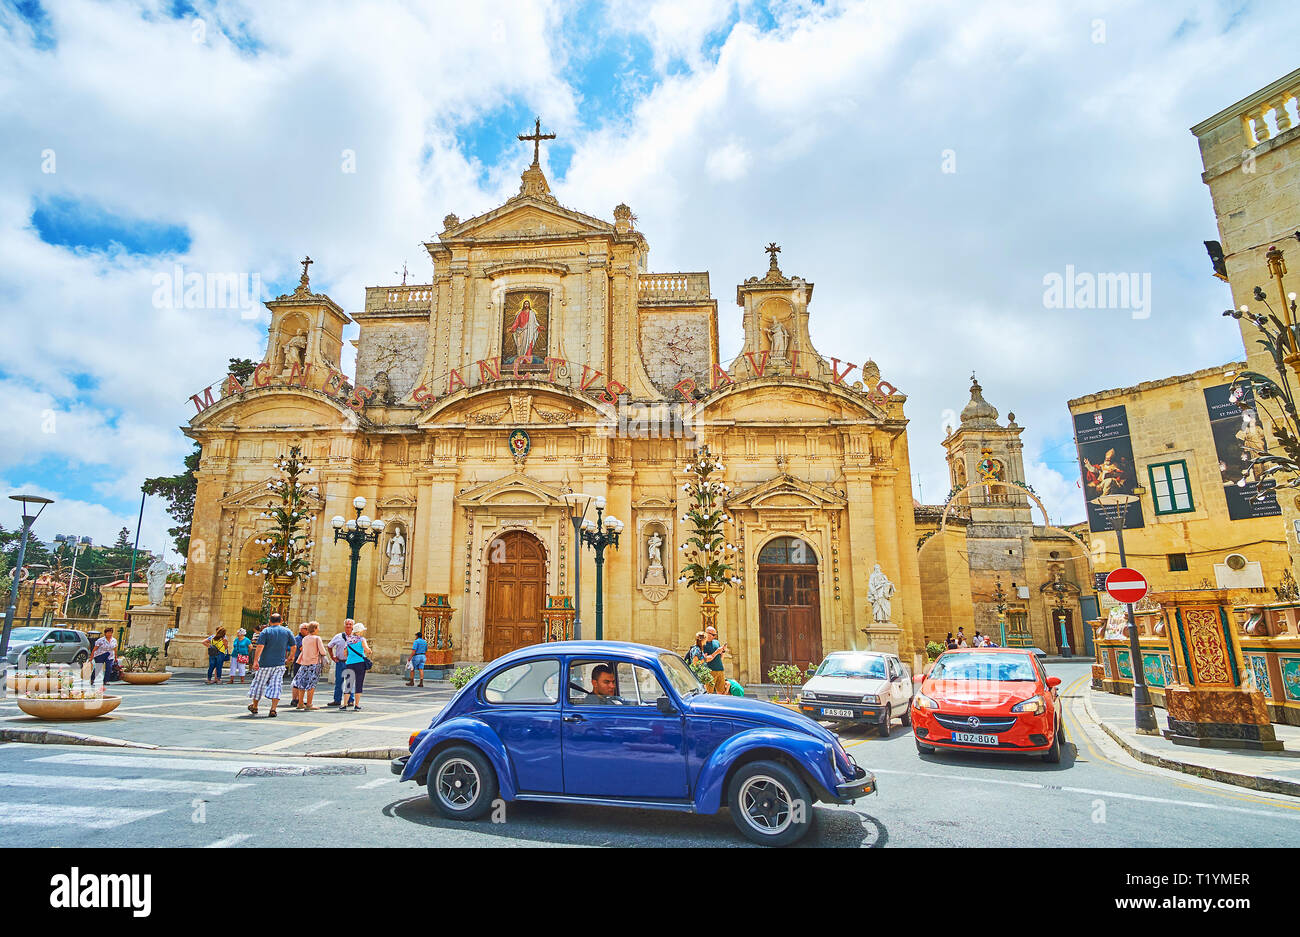 RABAT, MALTA - JUNE 16, 2018: The vintage Volkswagen Kafer (Beetle) car drives along the San Pawl Square with a view on Church of St Paul on the backg - Stock Image